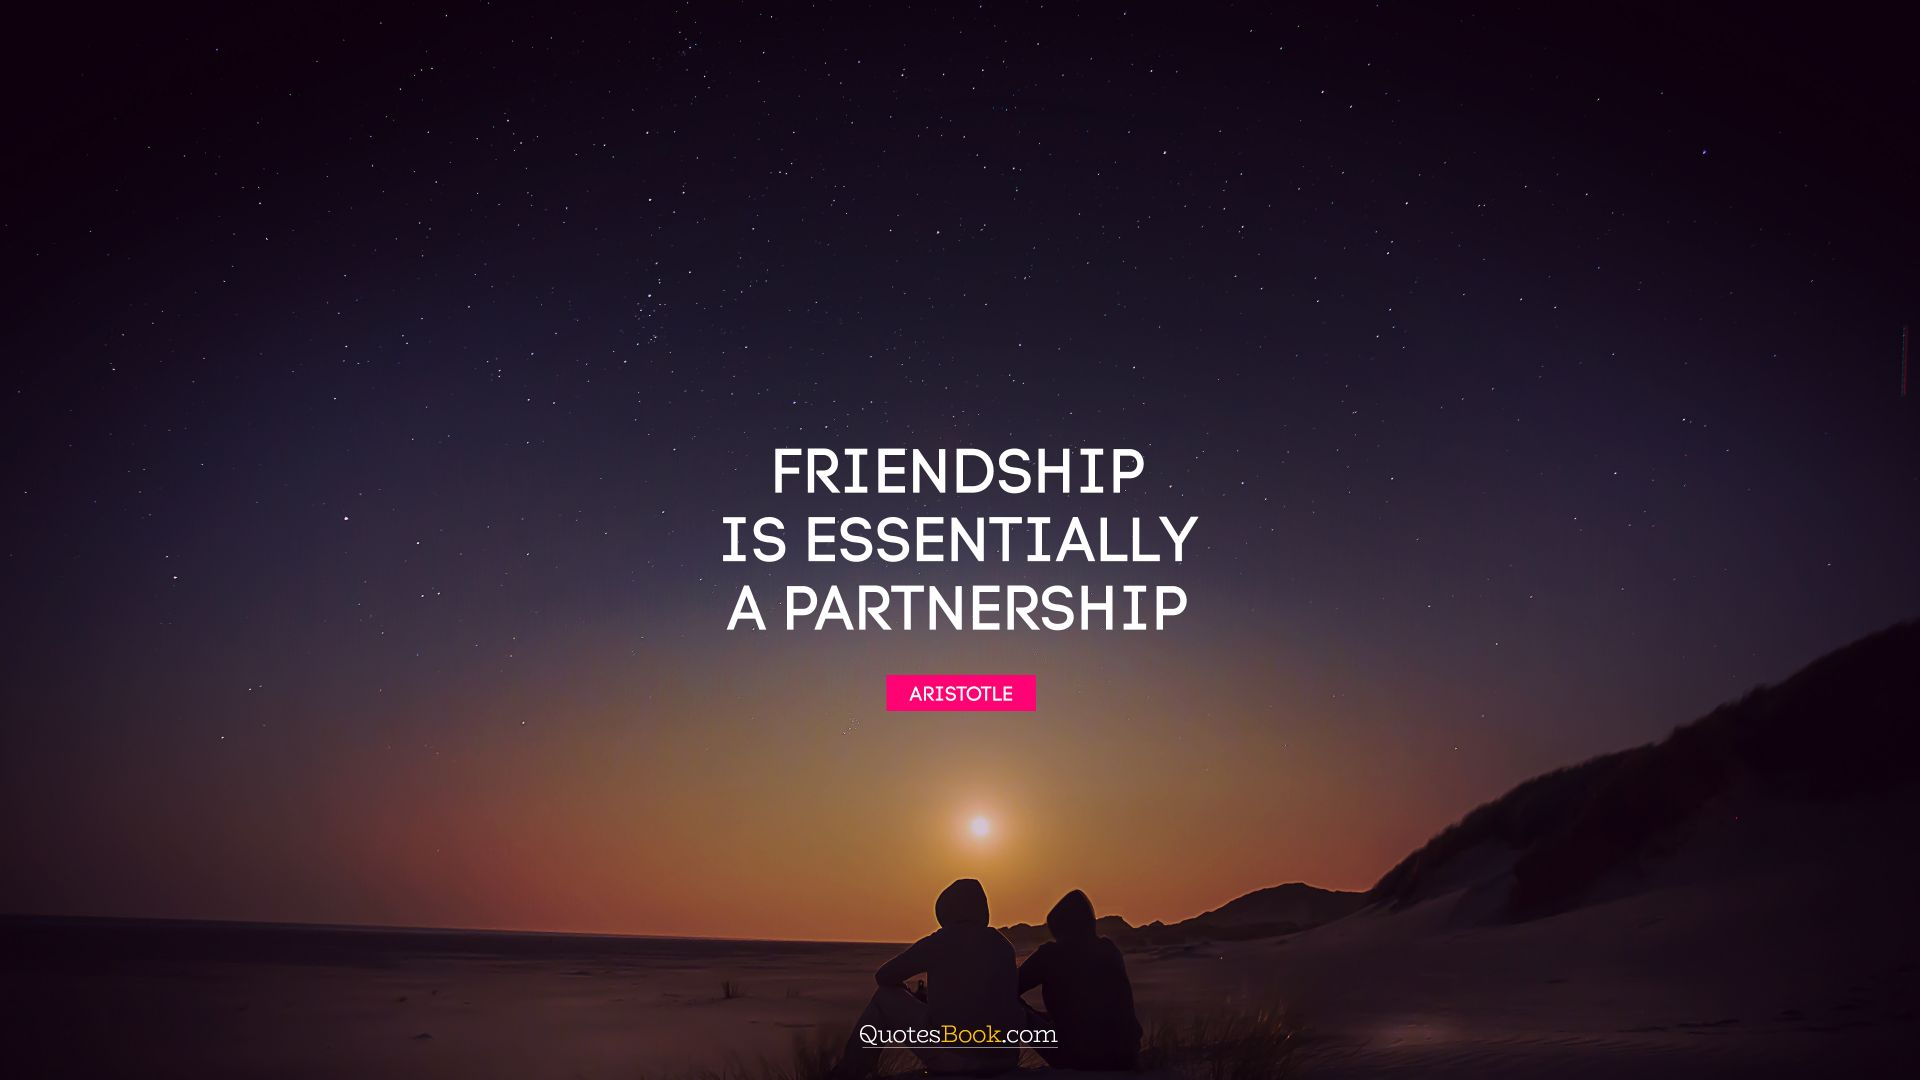 Friendship is essentially a partnership. - Quote by Aristotle